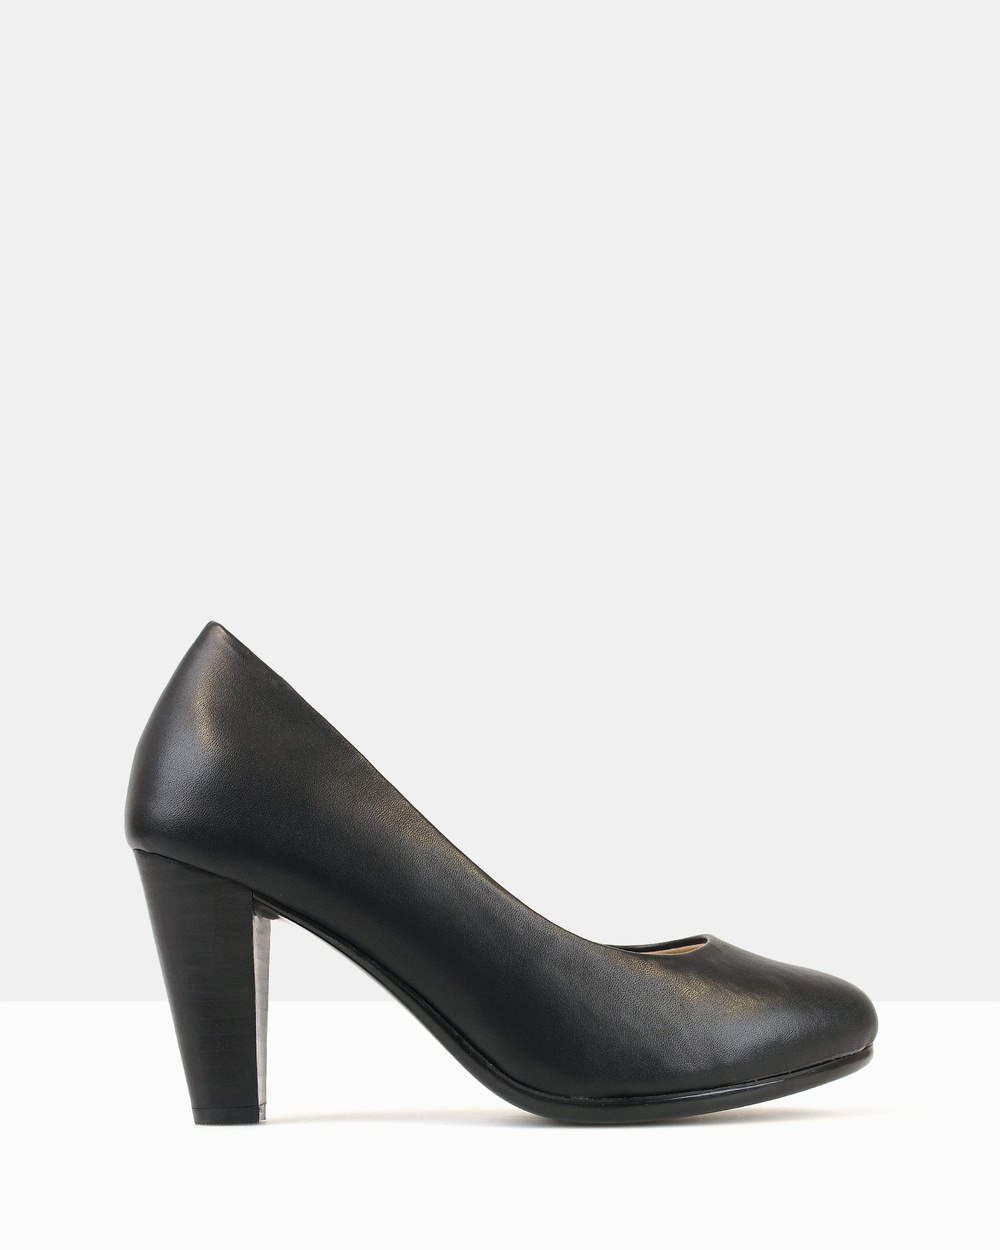 Betts Hawk Heeled Pumps All Pumps Black Hawk Heeled Pumps